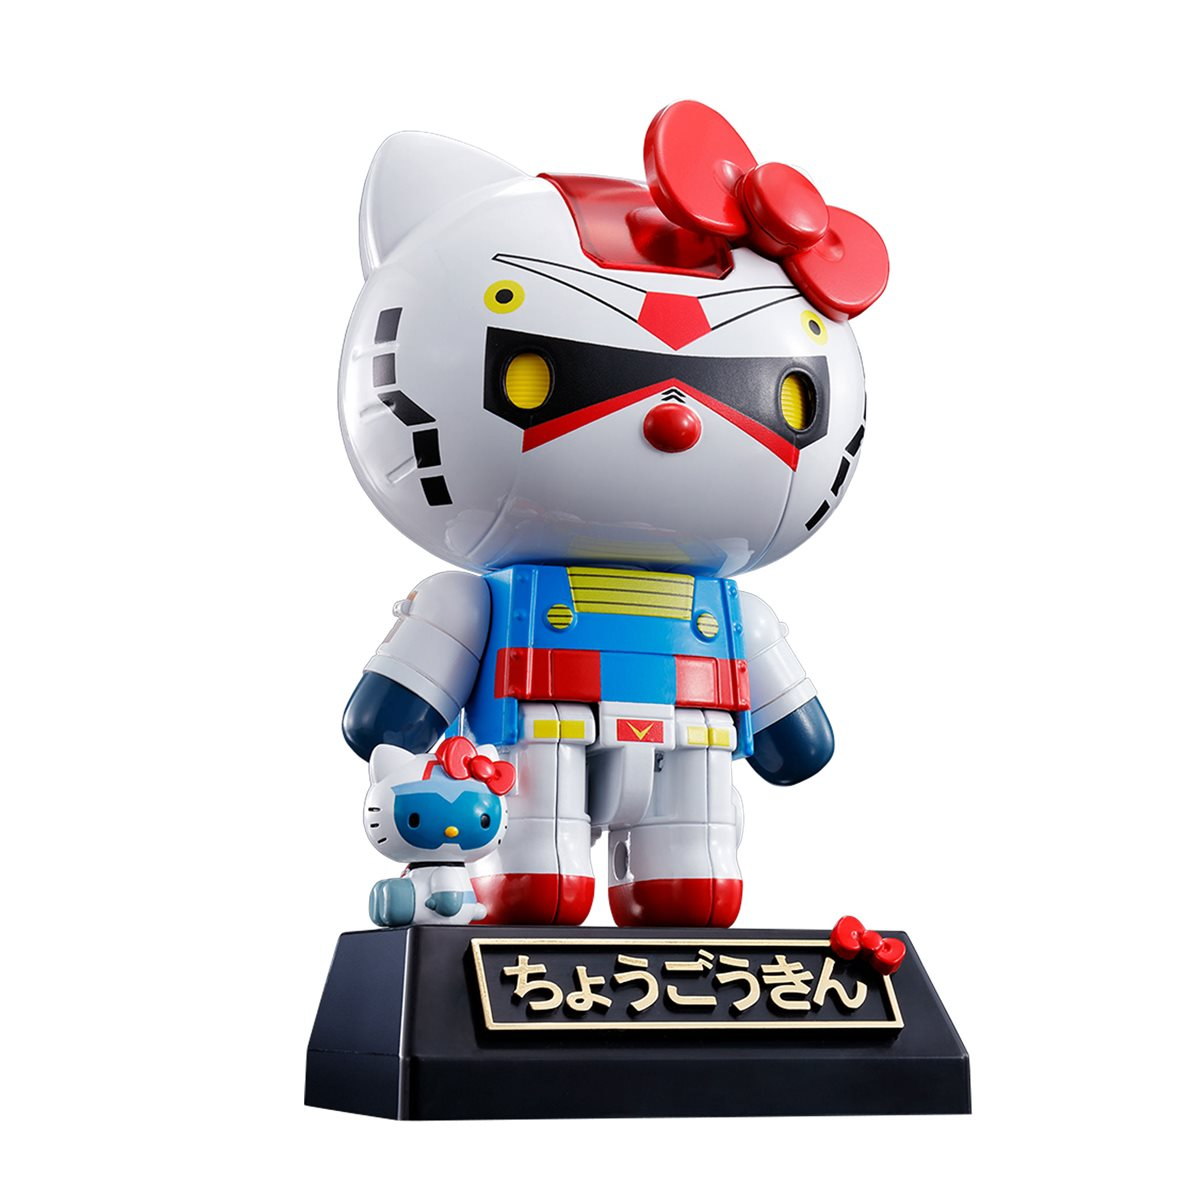 completed Chogokin Gundam Hello Kitty front